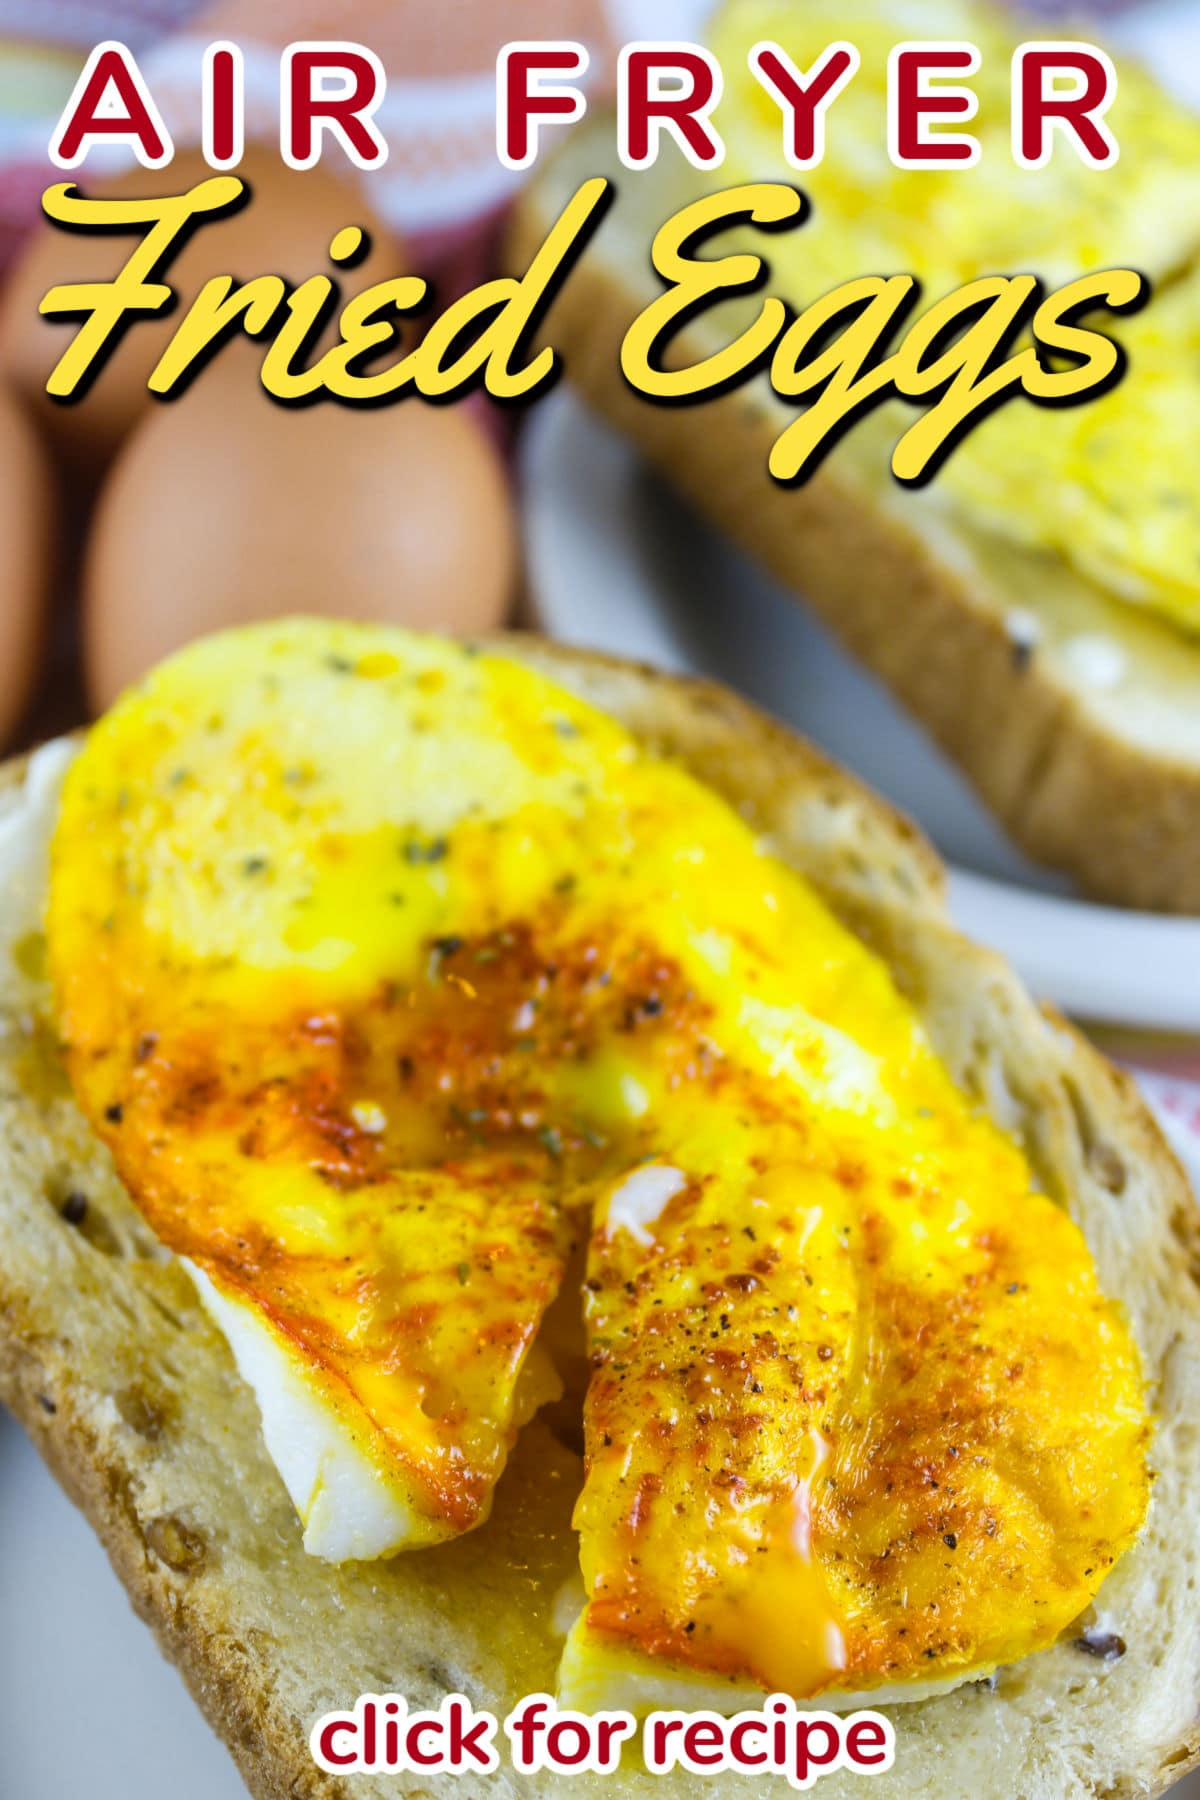 Making a fried egg in an air fryer is SO EASY!!!! I loved it for many reasons and the best part was the yolk came out runny - just how I like it! The best part was just how simple and easy it is!  via @foodhussy